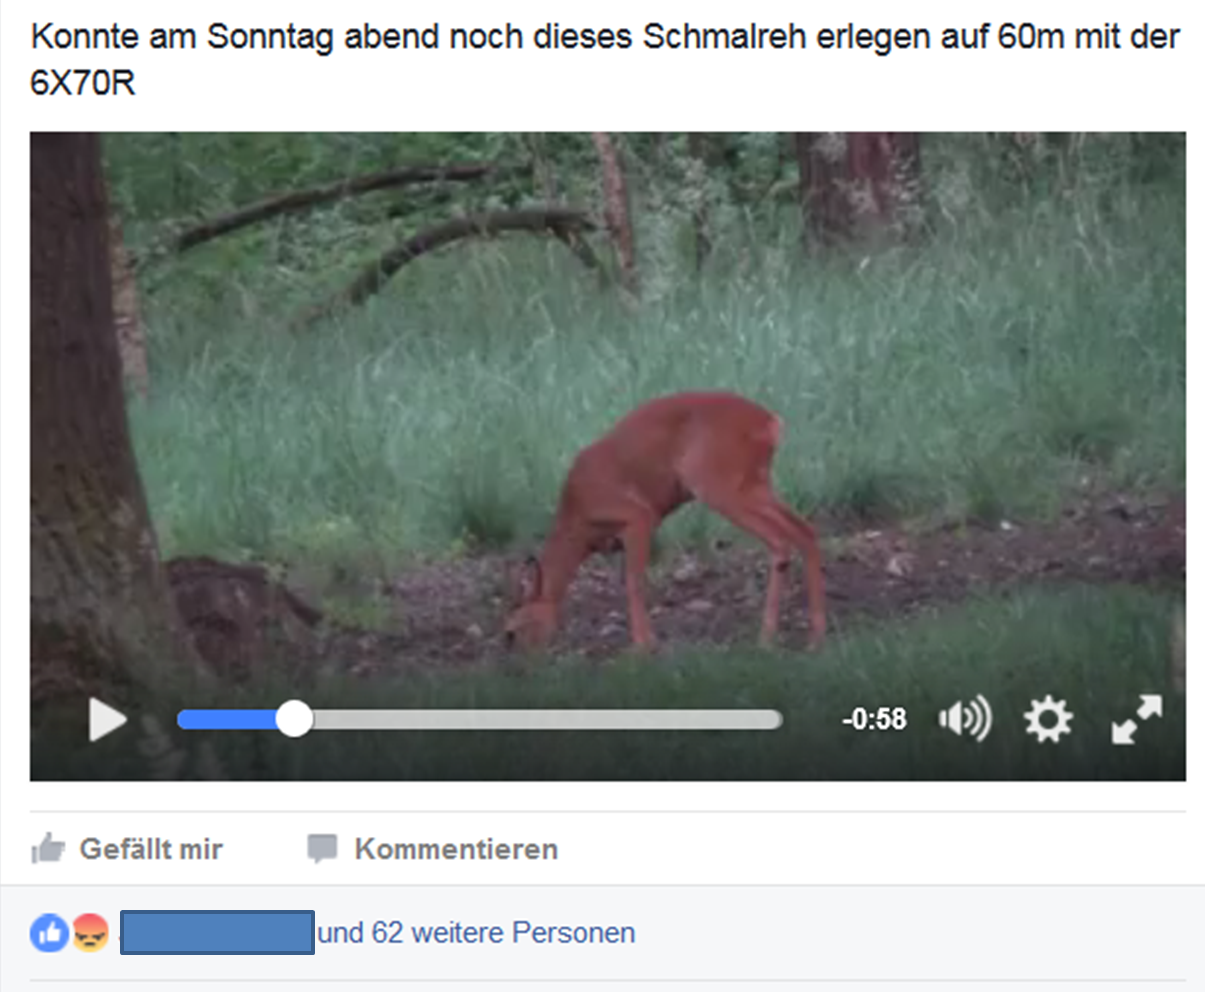 facebook meldung schmalreh video